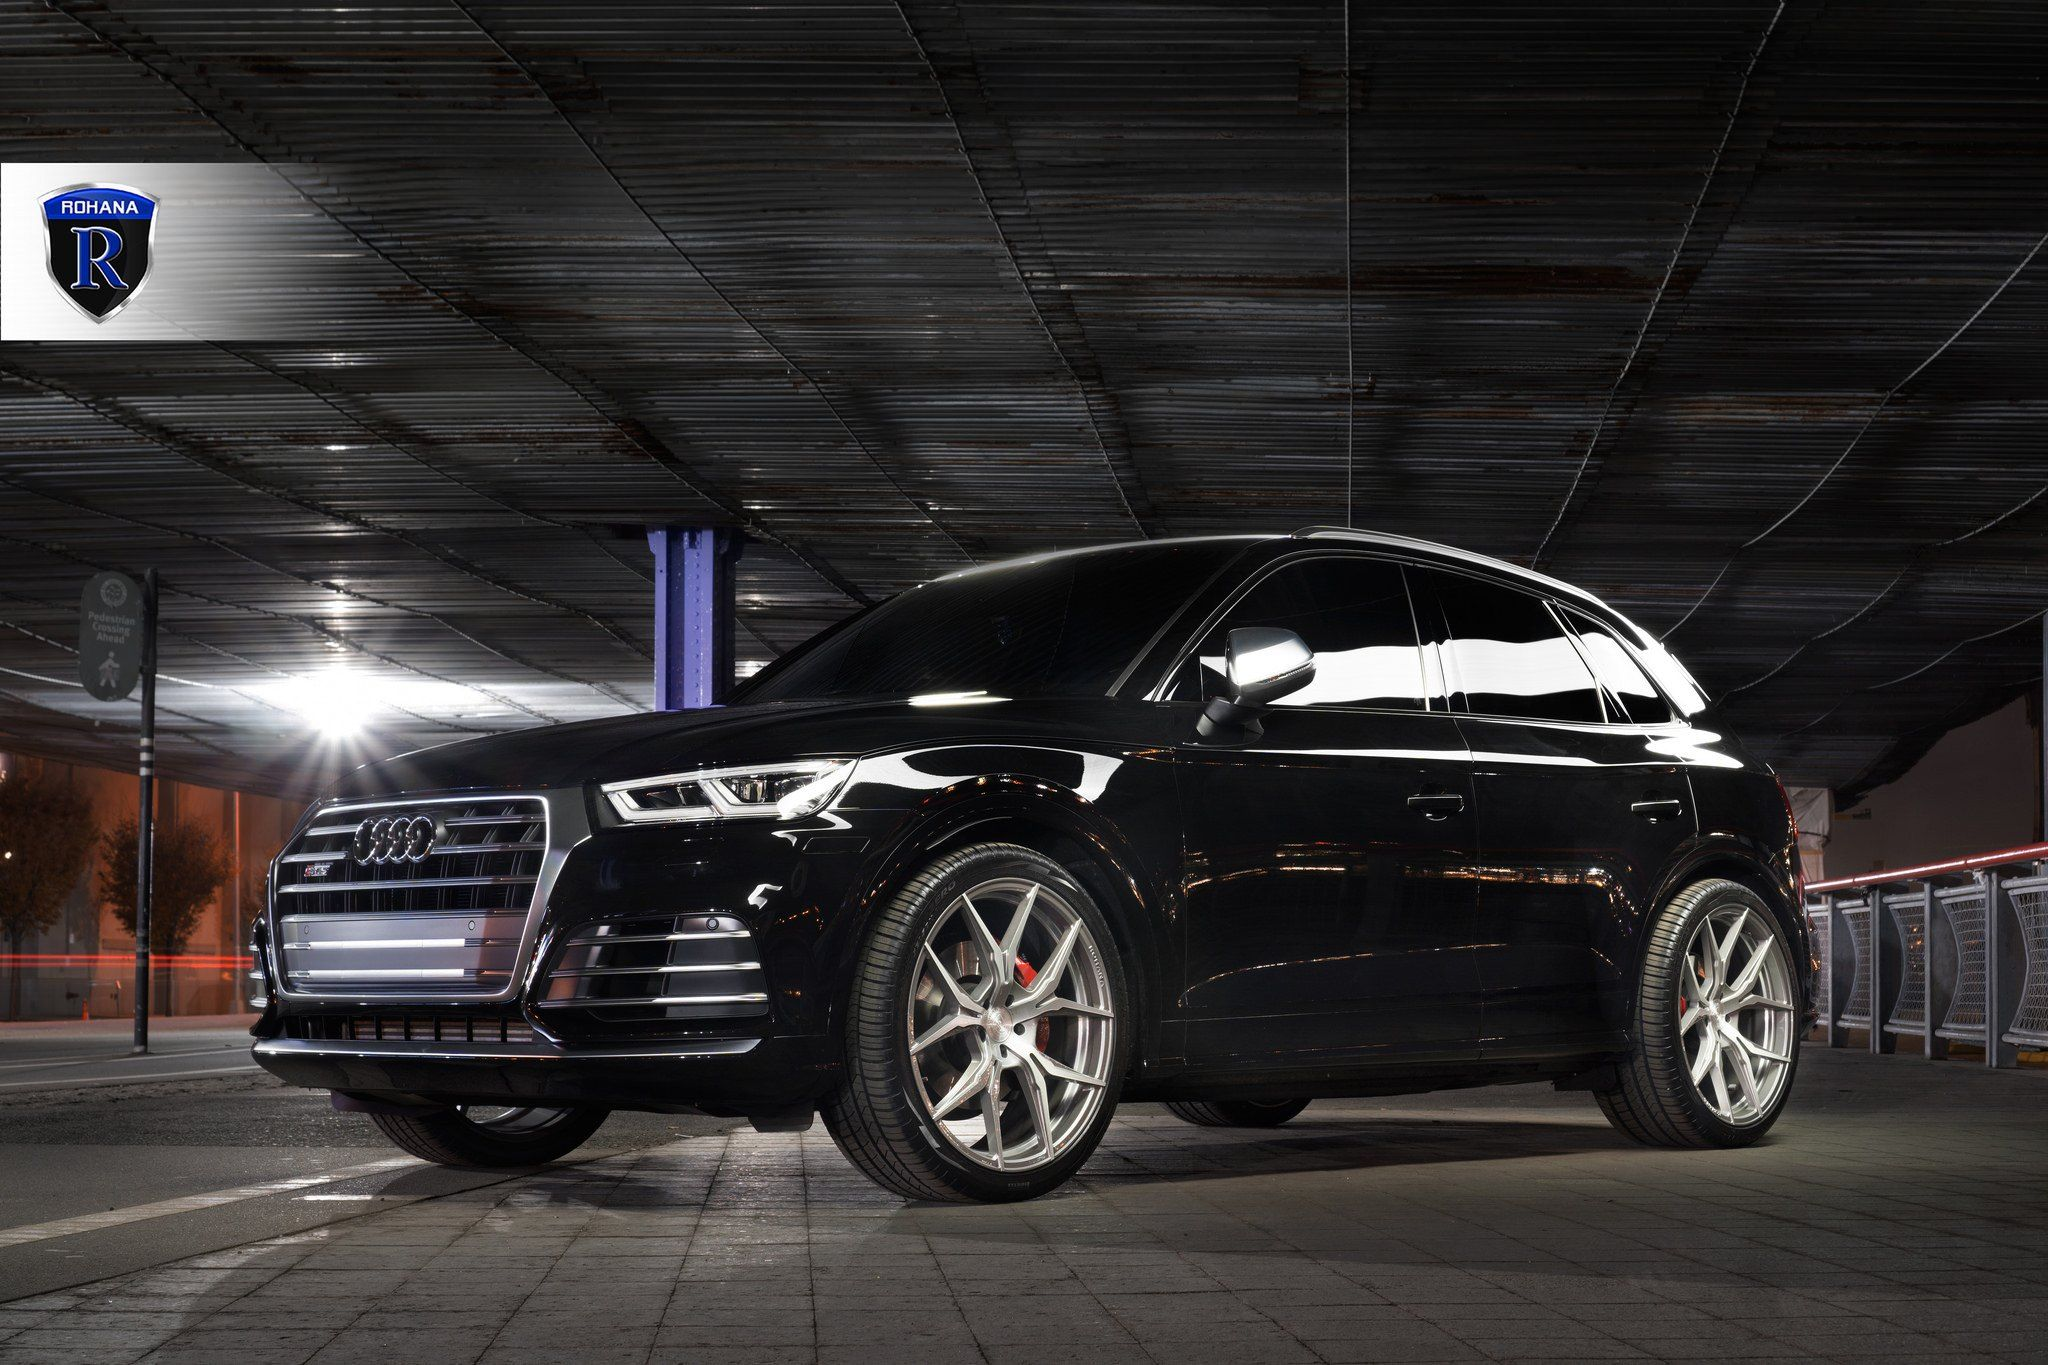 Black Audi Q5 On Chrome Rohana Wheels Black Audi Rohana Wheels Audi Q5